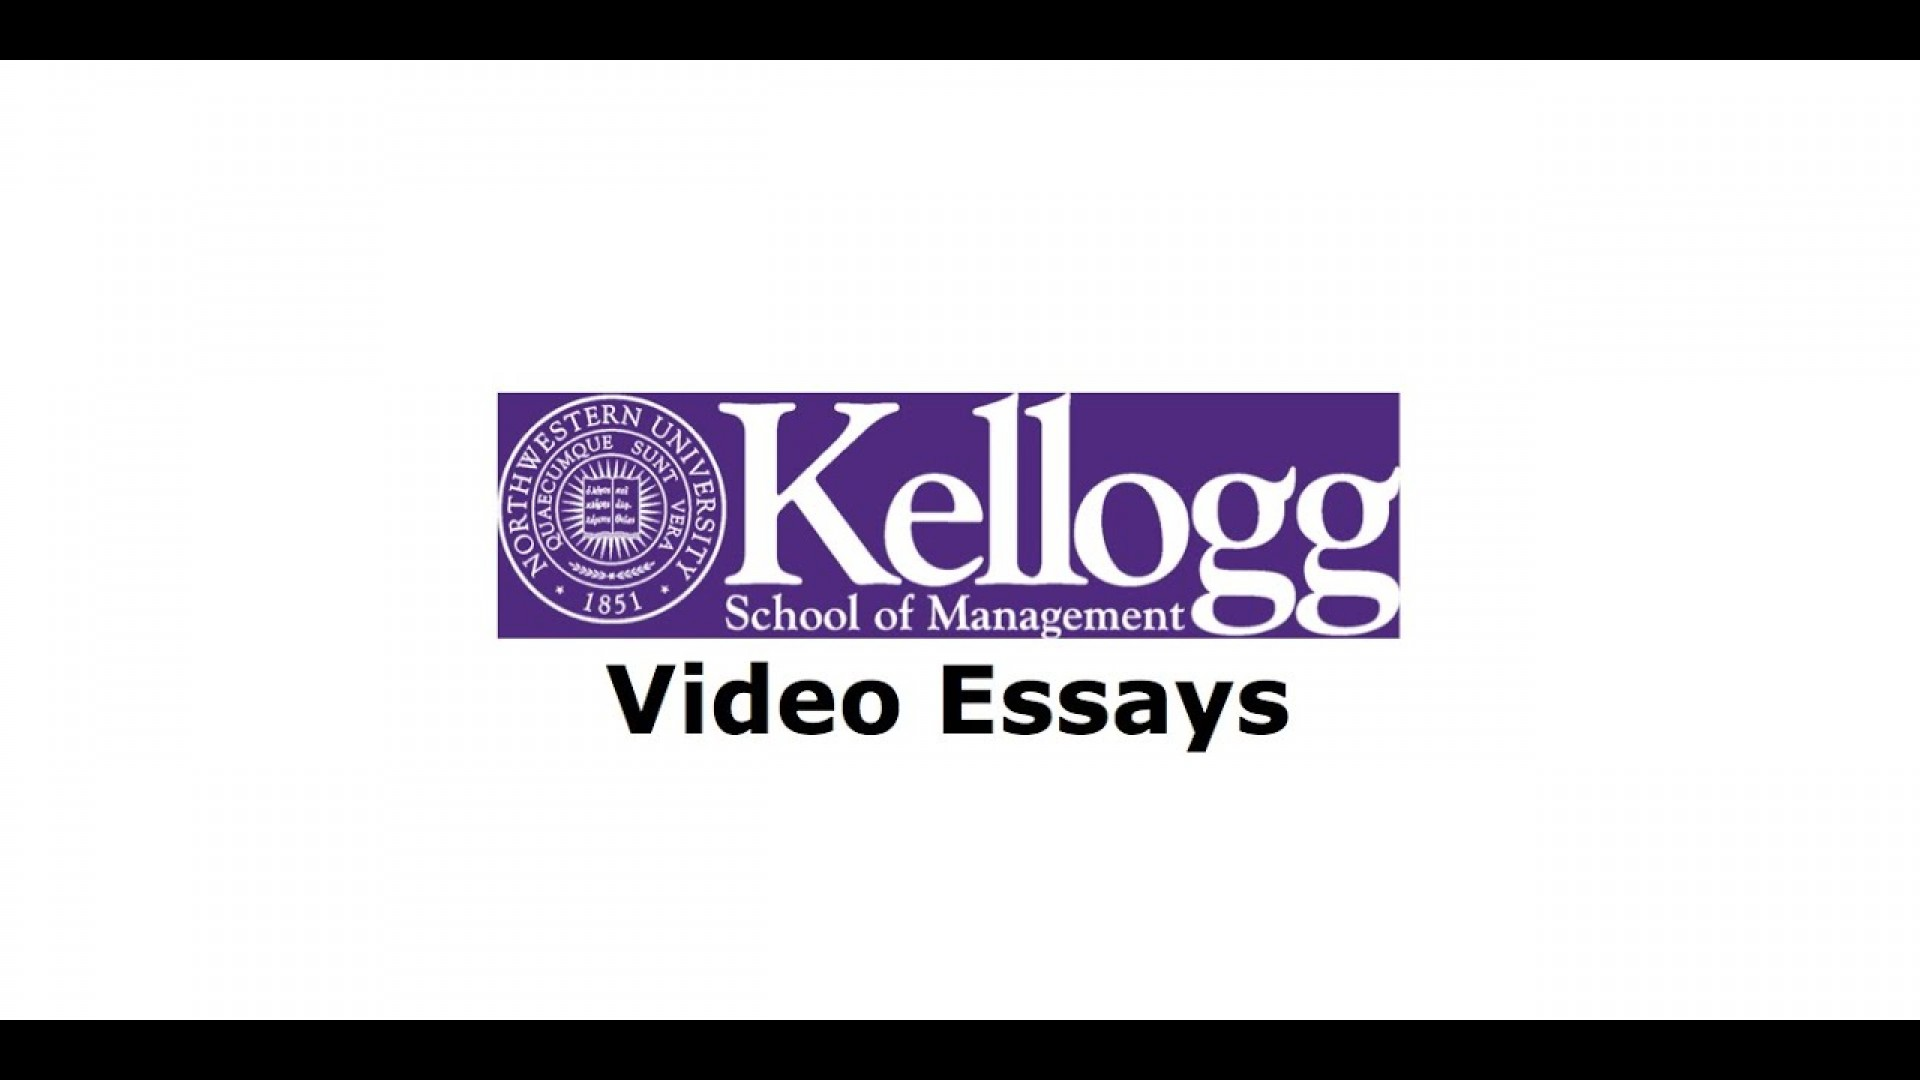 005 Essay Example Maxresdefault Kellogg Wondrous Video Deadline Questions 2018 1920